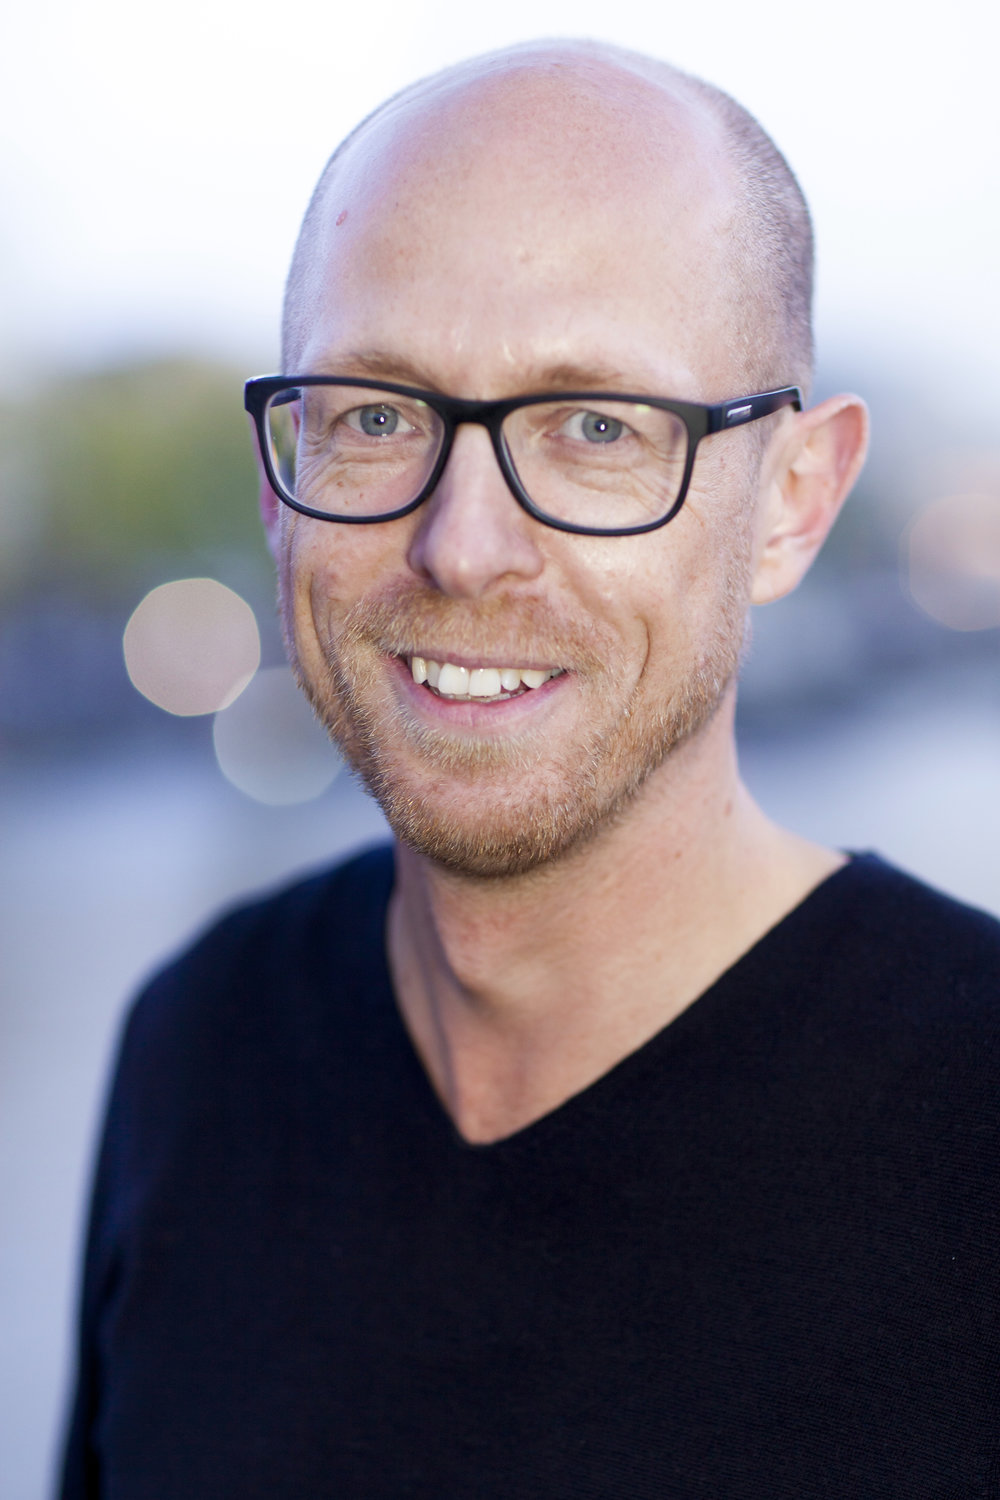 Harmen van Sprang, co-founder of shareNL and co-author of 'share - opportunities and challenges in the collaborative economy'